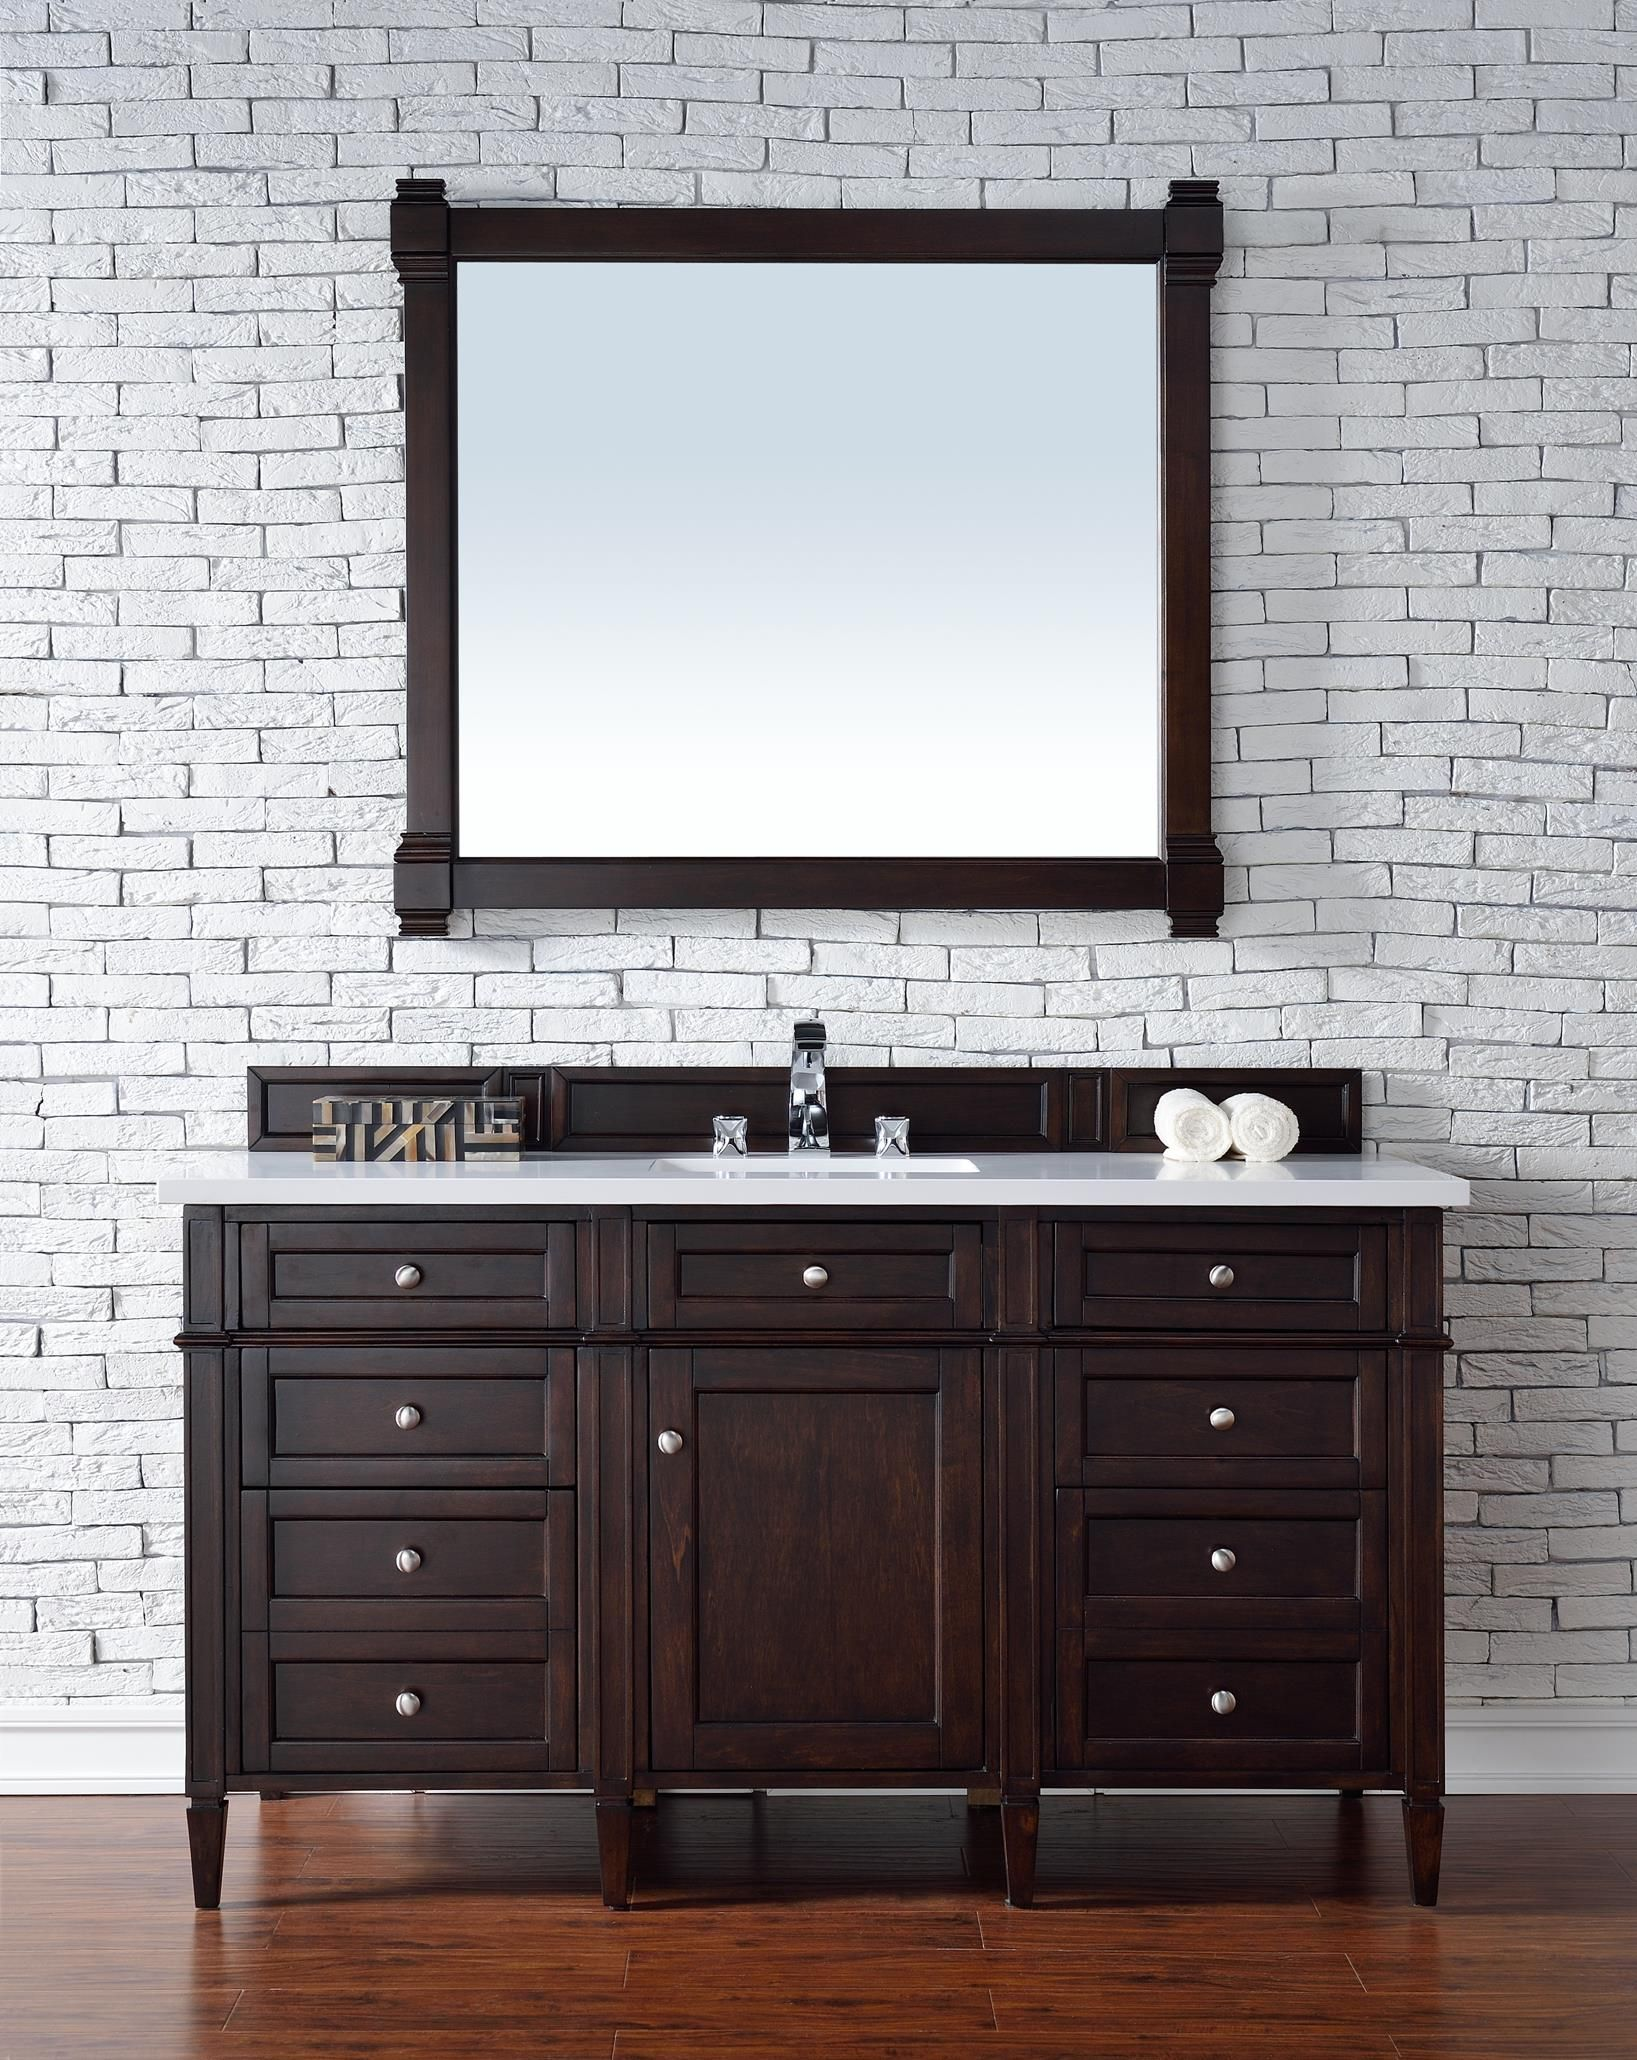 Stupendous Brittany 60 Single Sink Bathroom Vanity Cabinet Burnished Download Free Architecture Designs Embacsunscenecom